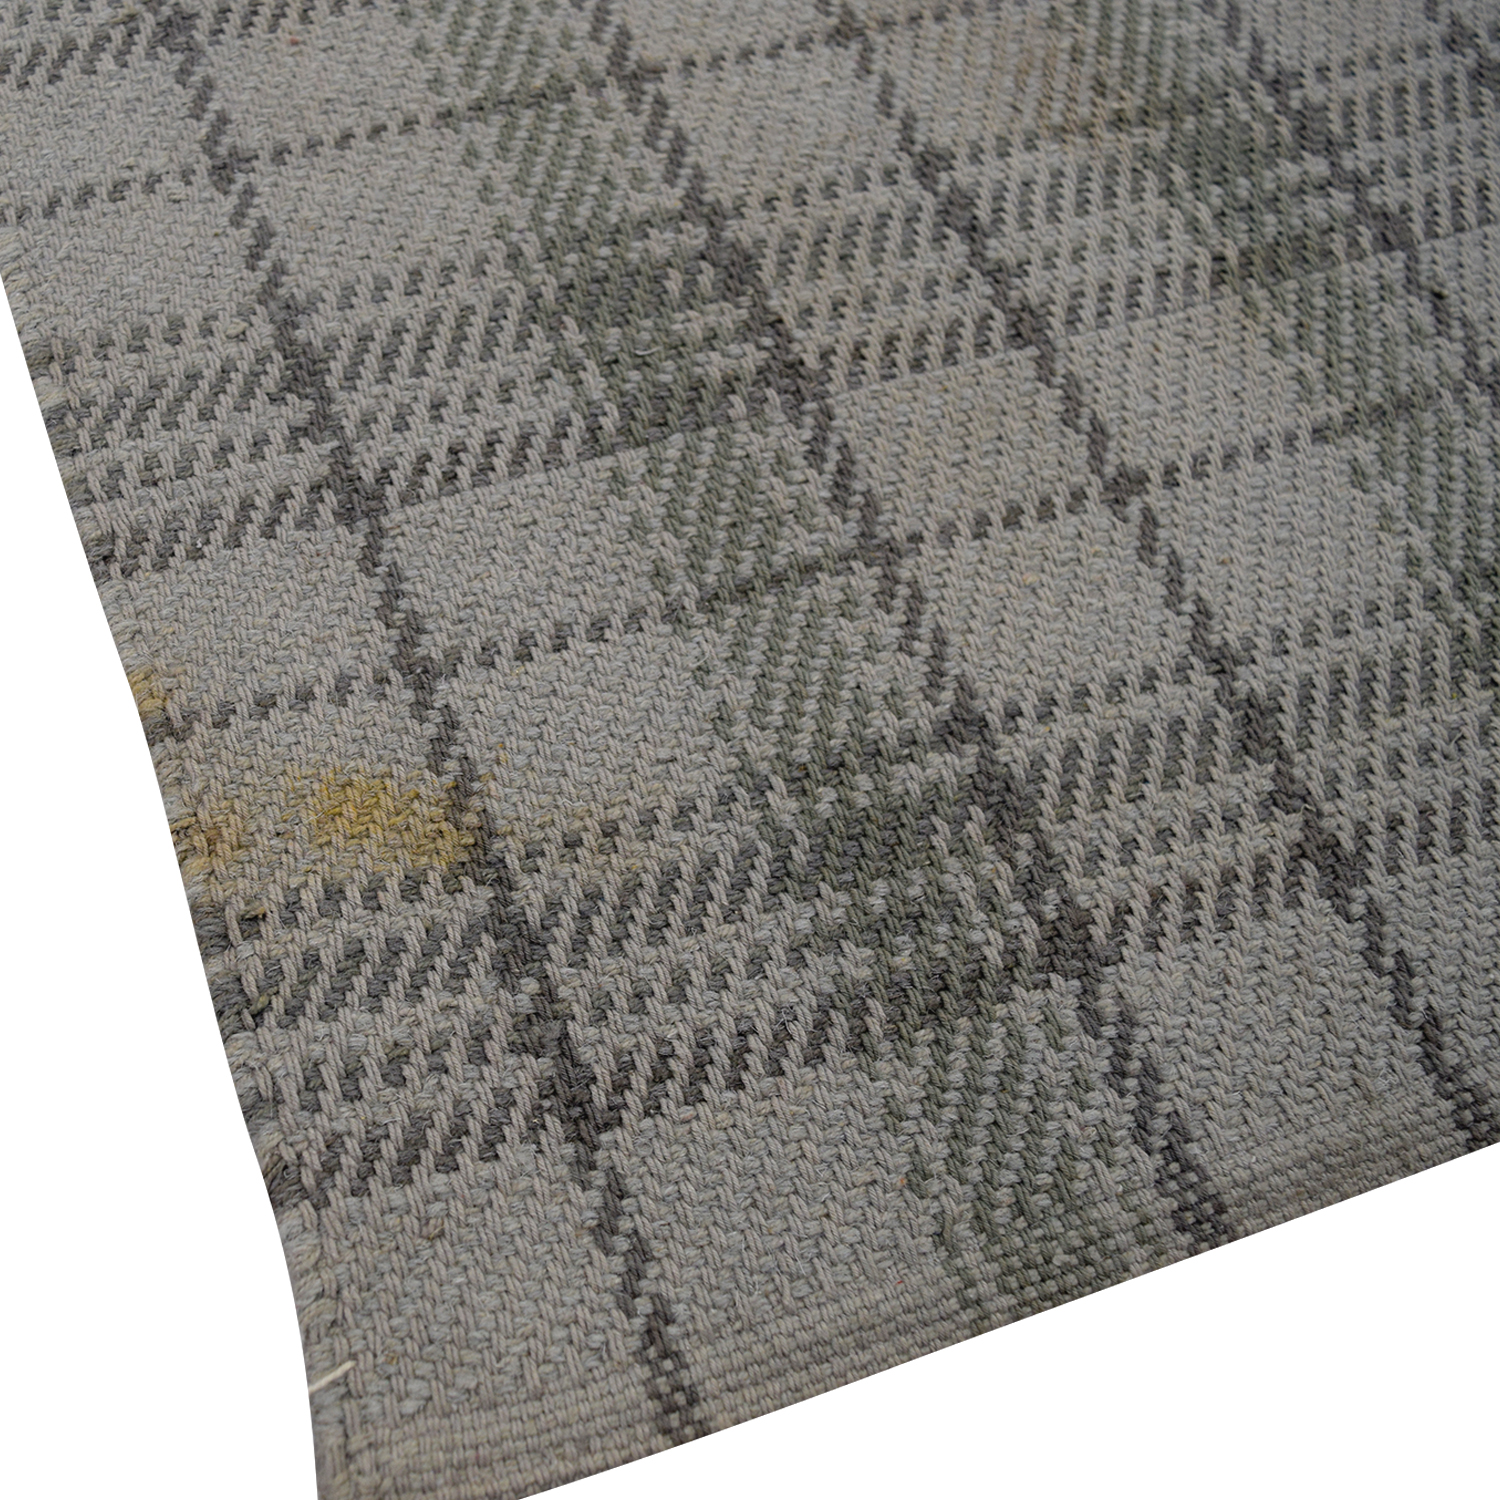 Plaid Rug: Obeetee Obeetee Grey Plaid Rug / Decor